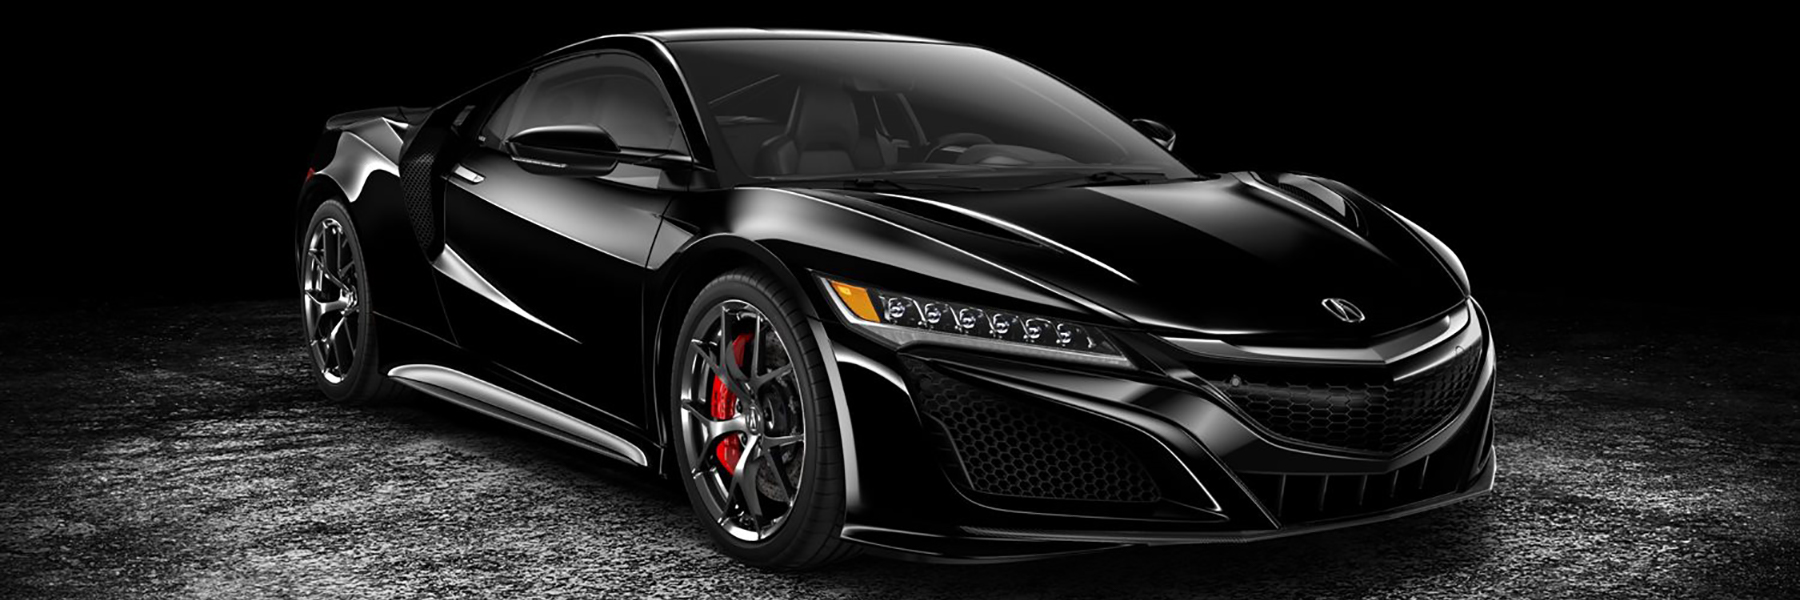 Black 2018 Acura NSX Front View